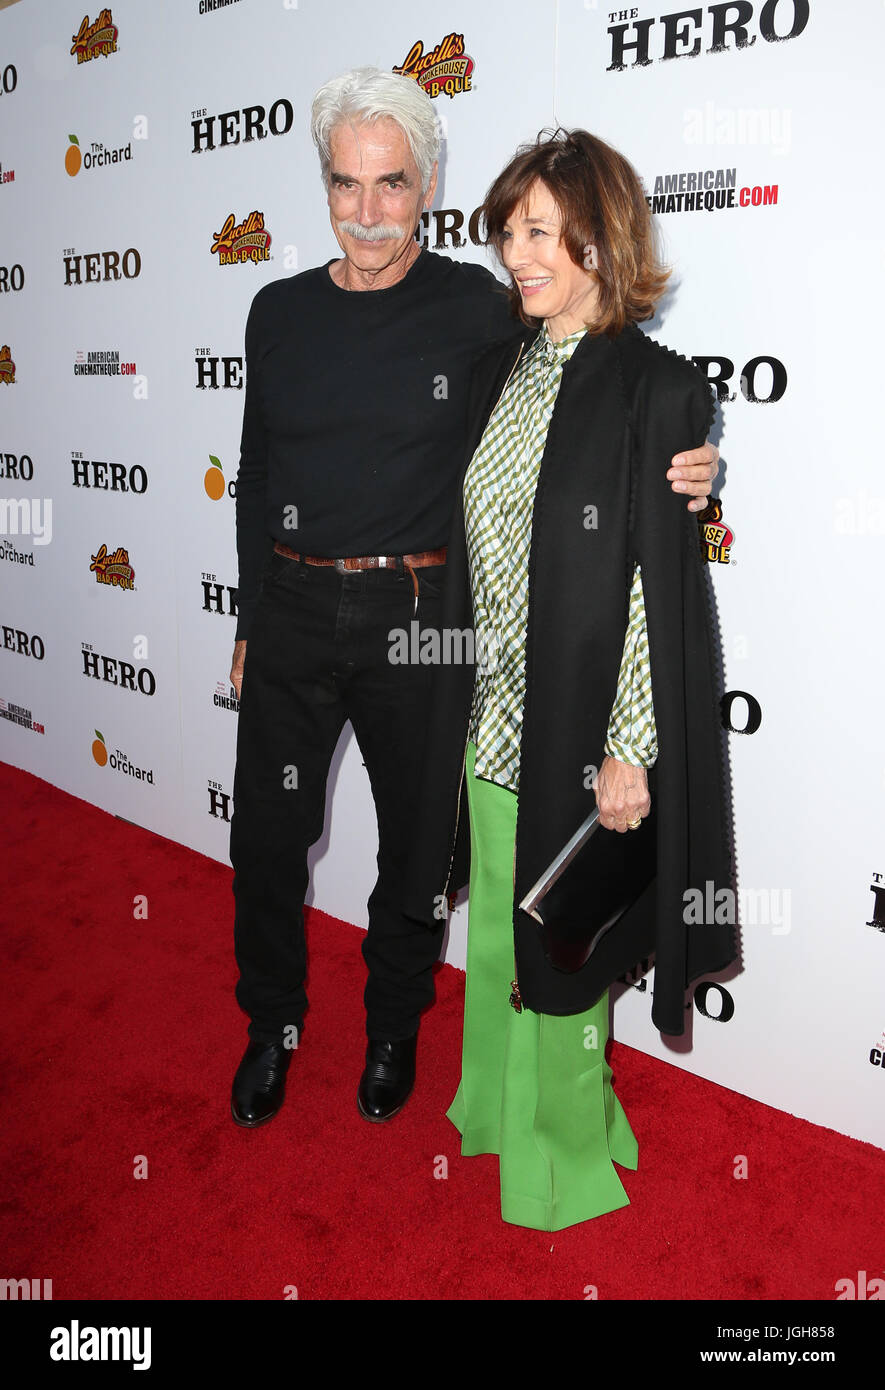 Premiere Of The Orchard's 'The Hero'  Featuring: Sam Elliot, Anne Archer Where: Hollywood, California, - Stock Image